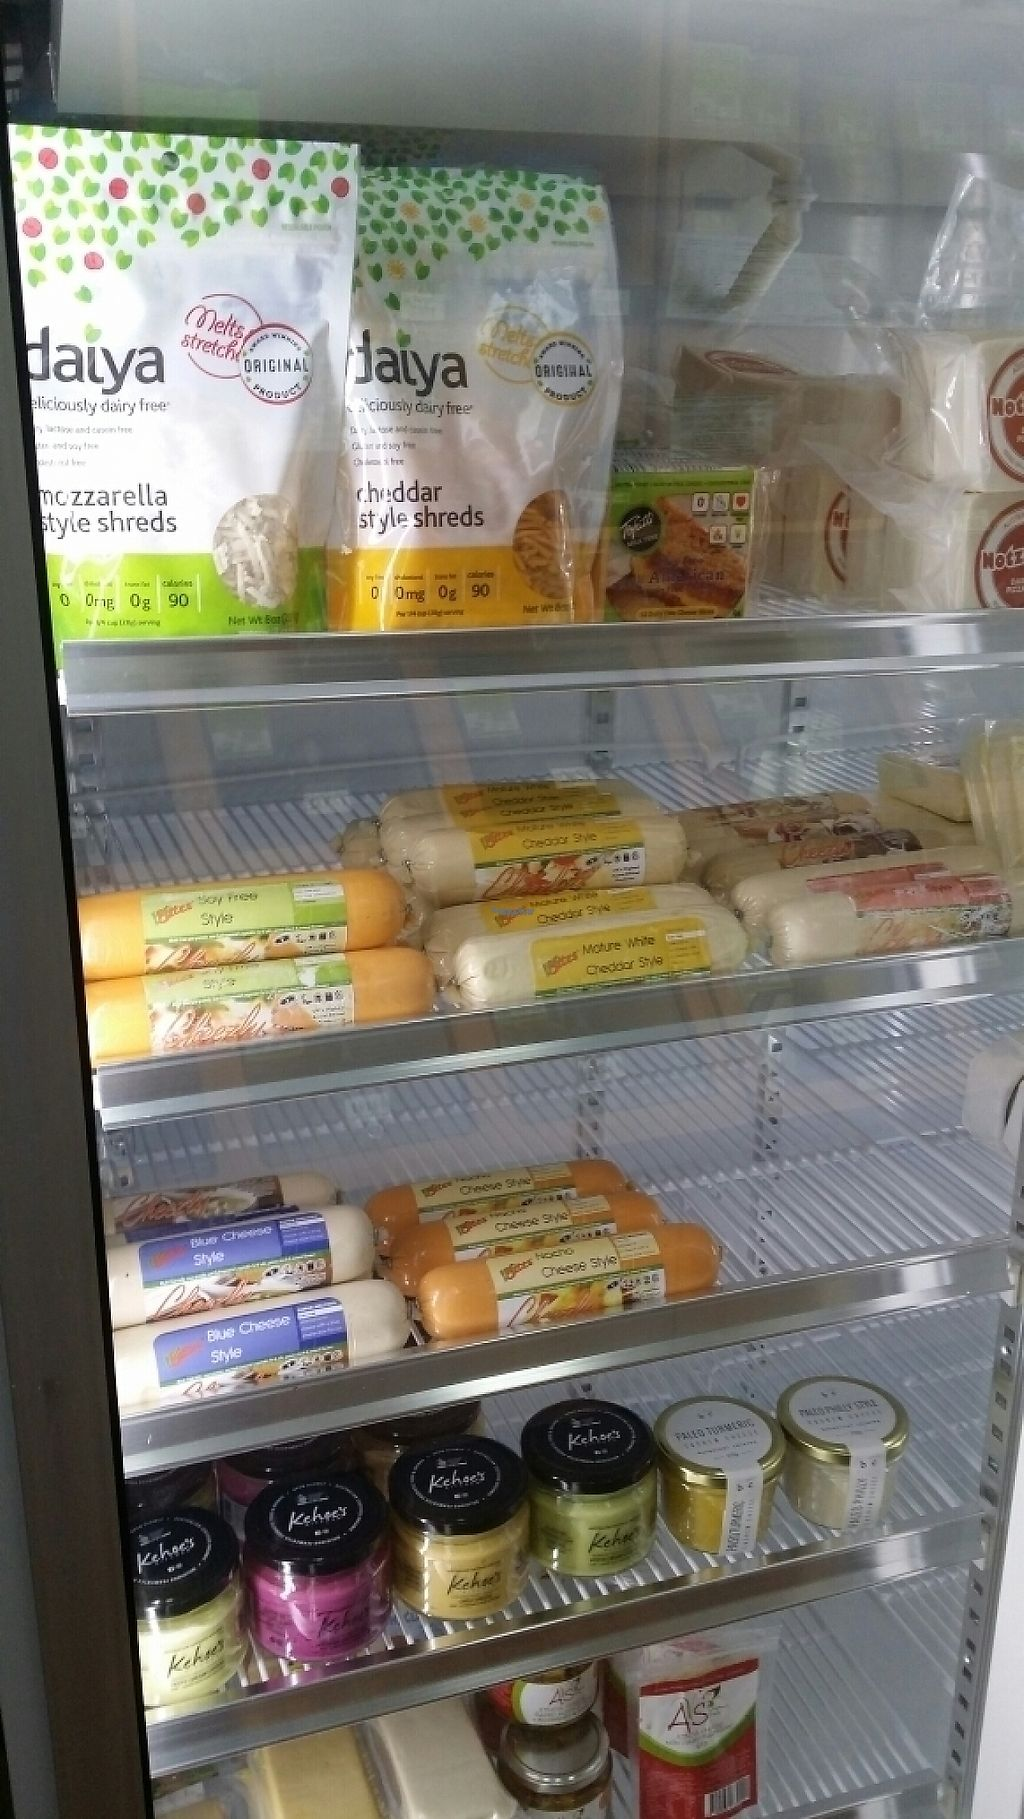 """Photo of Flannerys Natural and Organic Supermarket- Chermside  by <a href=""""/members/profile/Mike%20Munsie"""">Mike Munsie</a> <br/>cold goods <br/> April 26, 2017  - <a href='/contact/abuse/image/24921/252506'>Report</a>"""